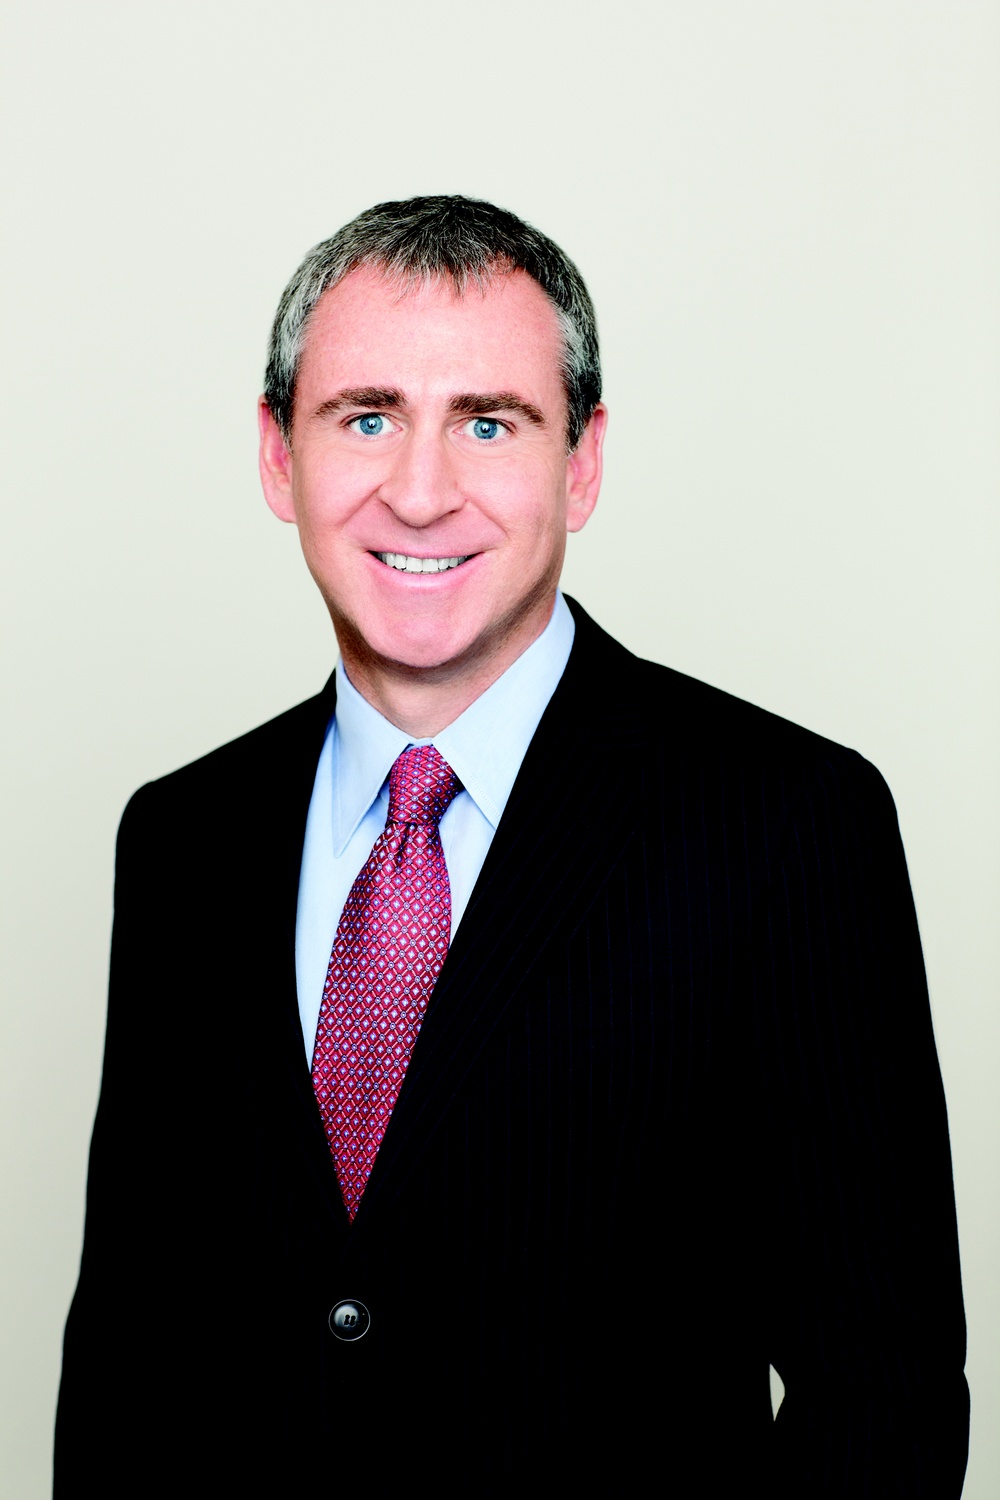 Kenneth C. Griffin '89 has donated $150 million to the University, which is the largest in the history of the College.